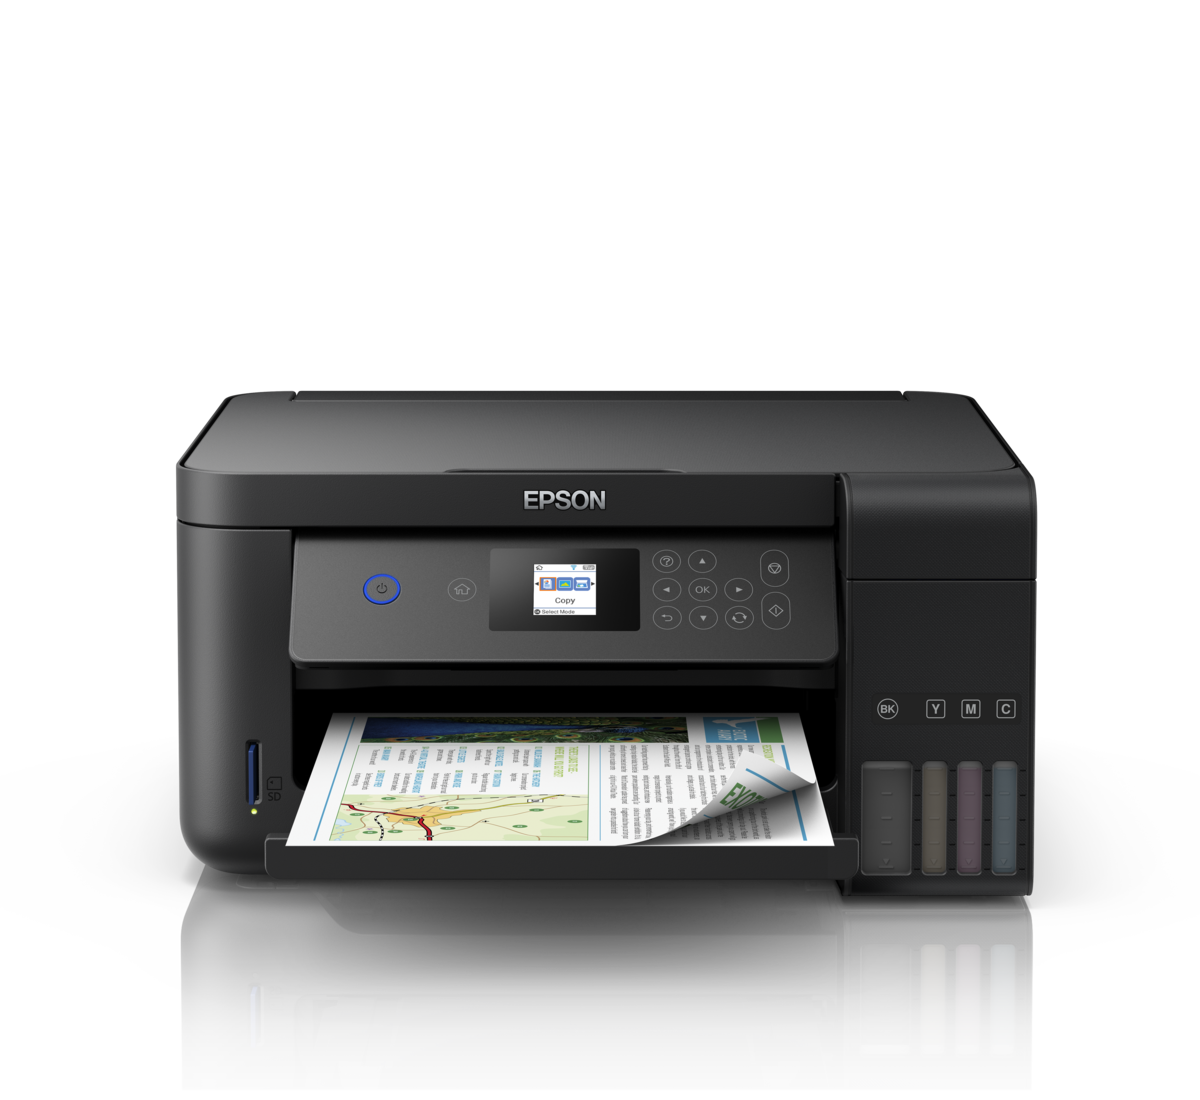 Epson EcoTank L4160 All-In-One Ink Tank Colour (Print/Scan/Copy/Wi-Fi/Delux) Printer